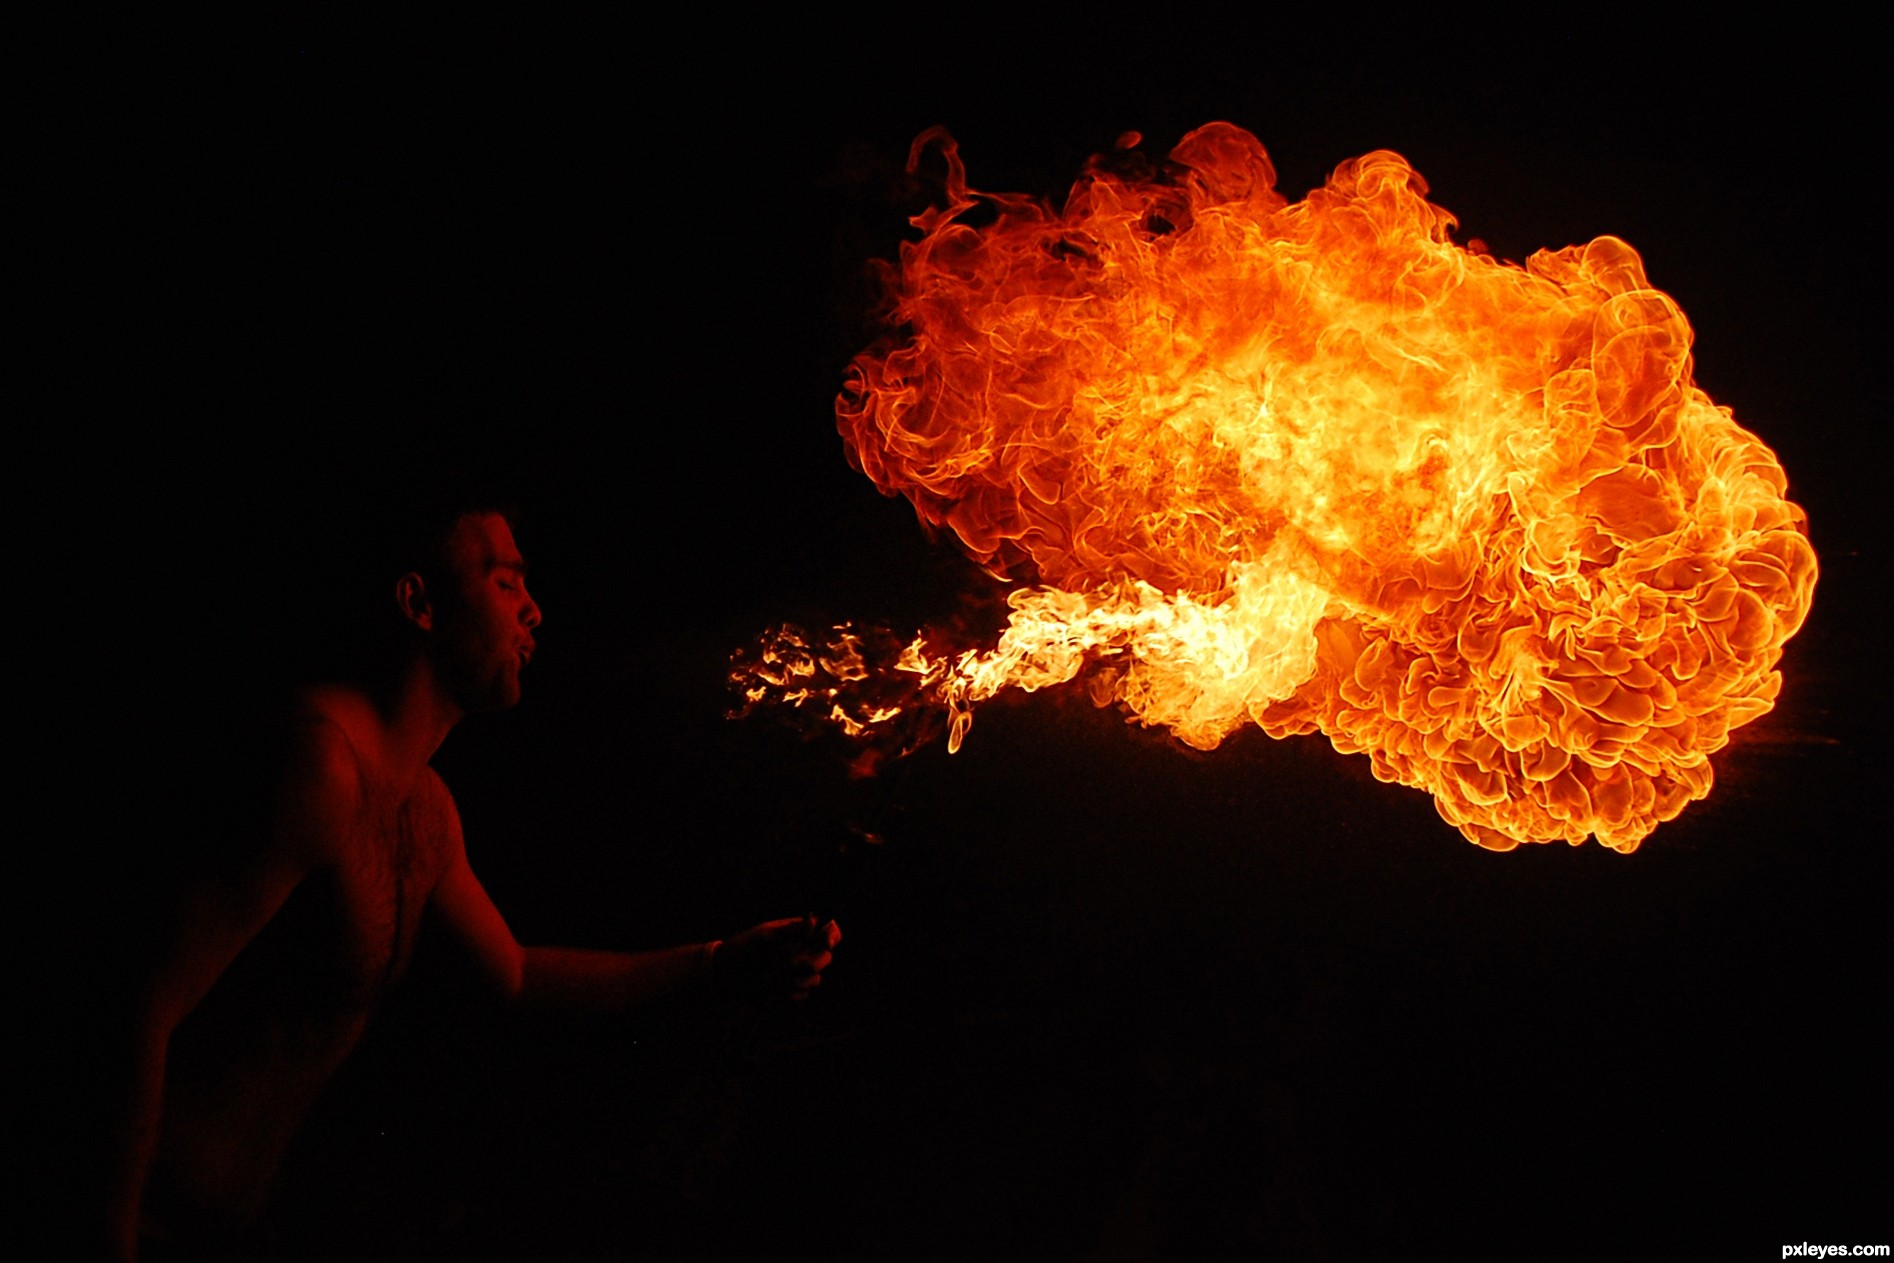 Fire Breather picture, by loganfoll for: fire photography ... Fire